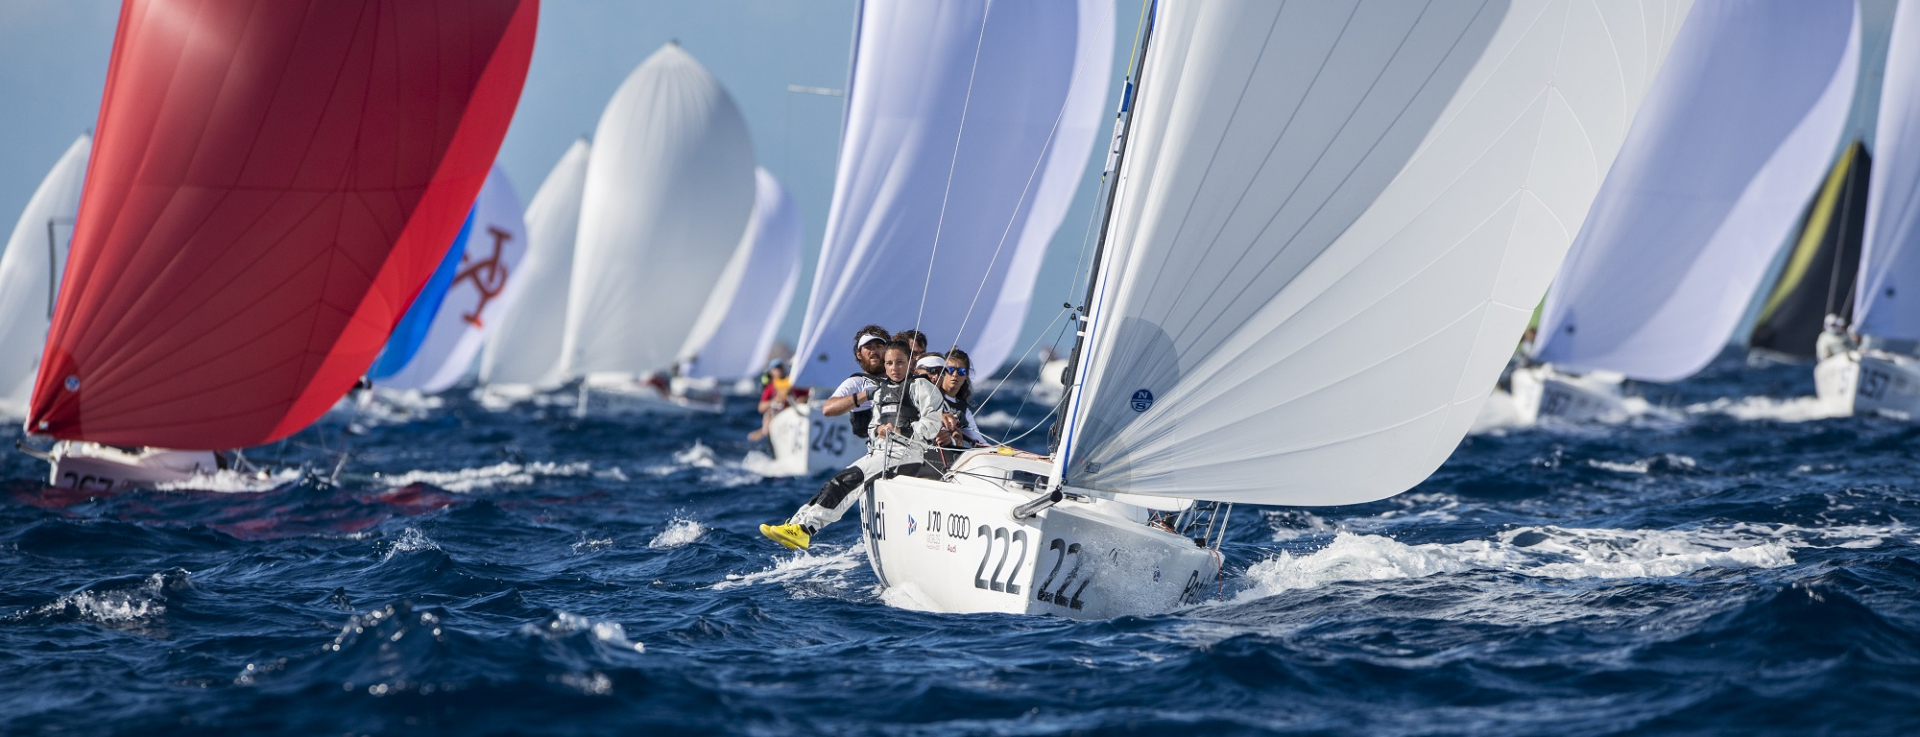 Audi J/70 World Championship: A Magnificent Start - NEWS - Yacht Club Costa Smeralda